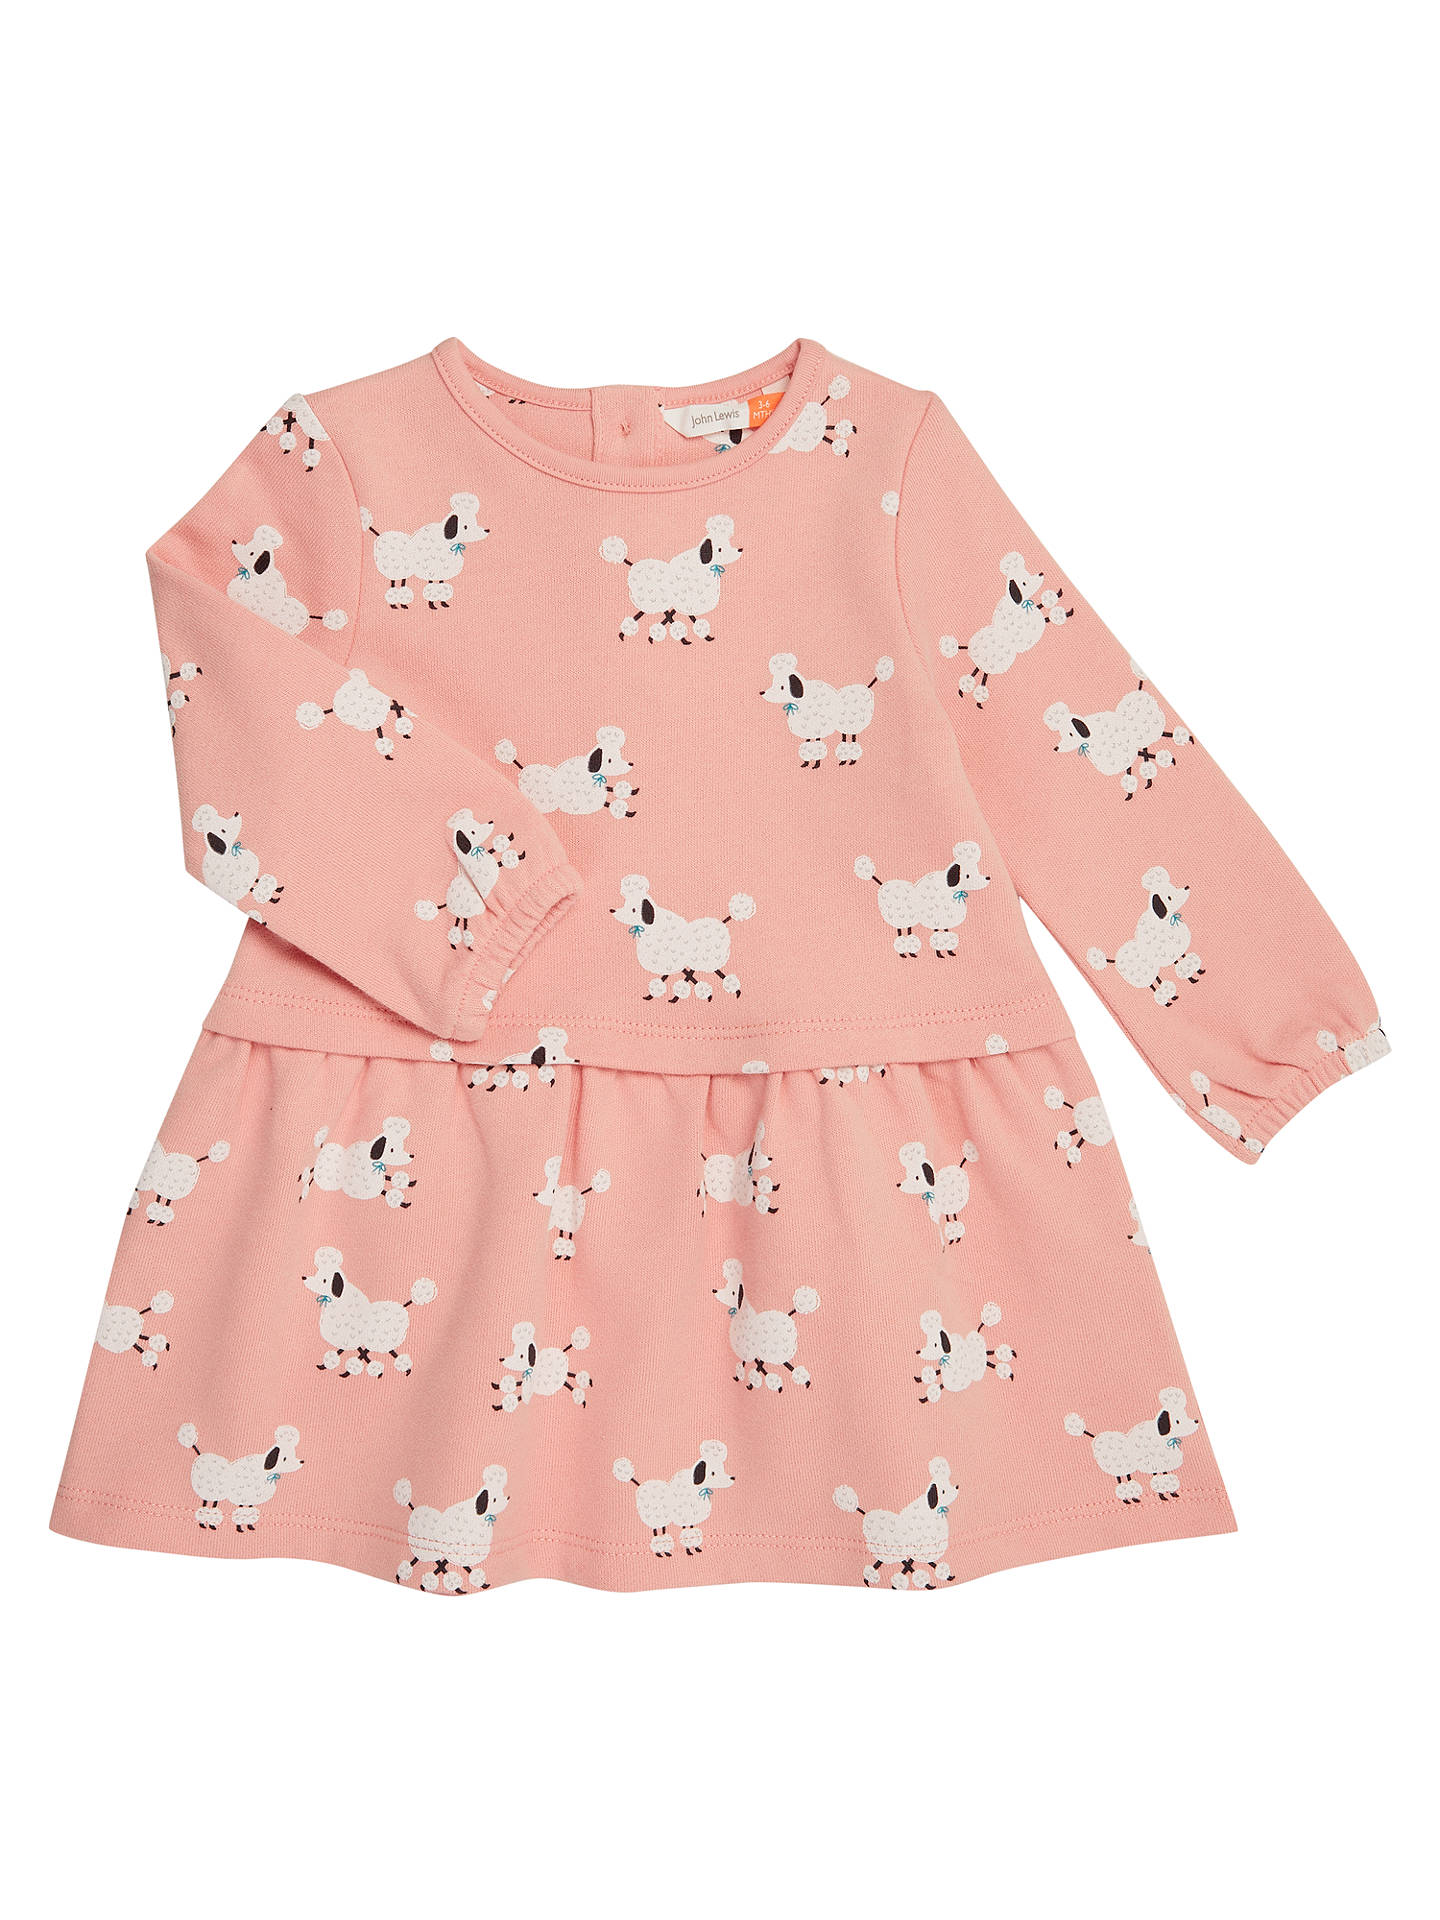 BuyJohn Lewis & Partners Baby Poodle Print Sweatshirt Dress, Pink, 0-3 months Online at johnlewis.com